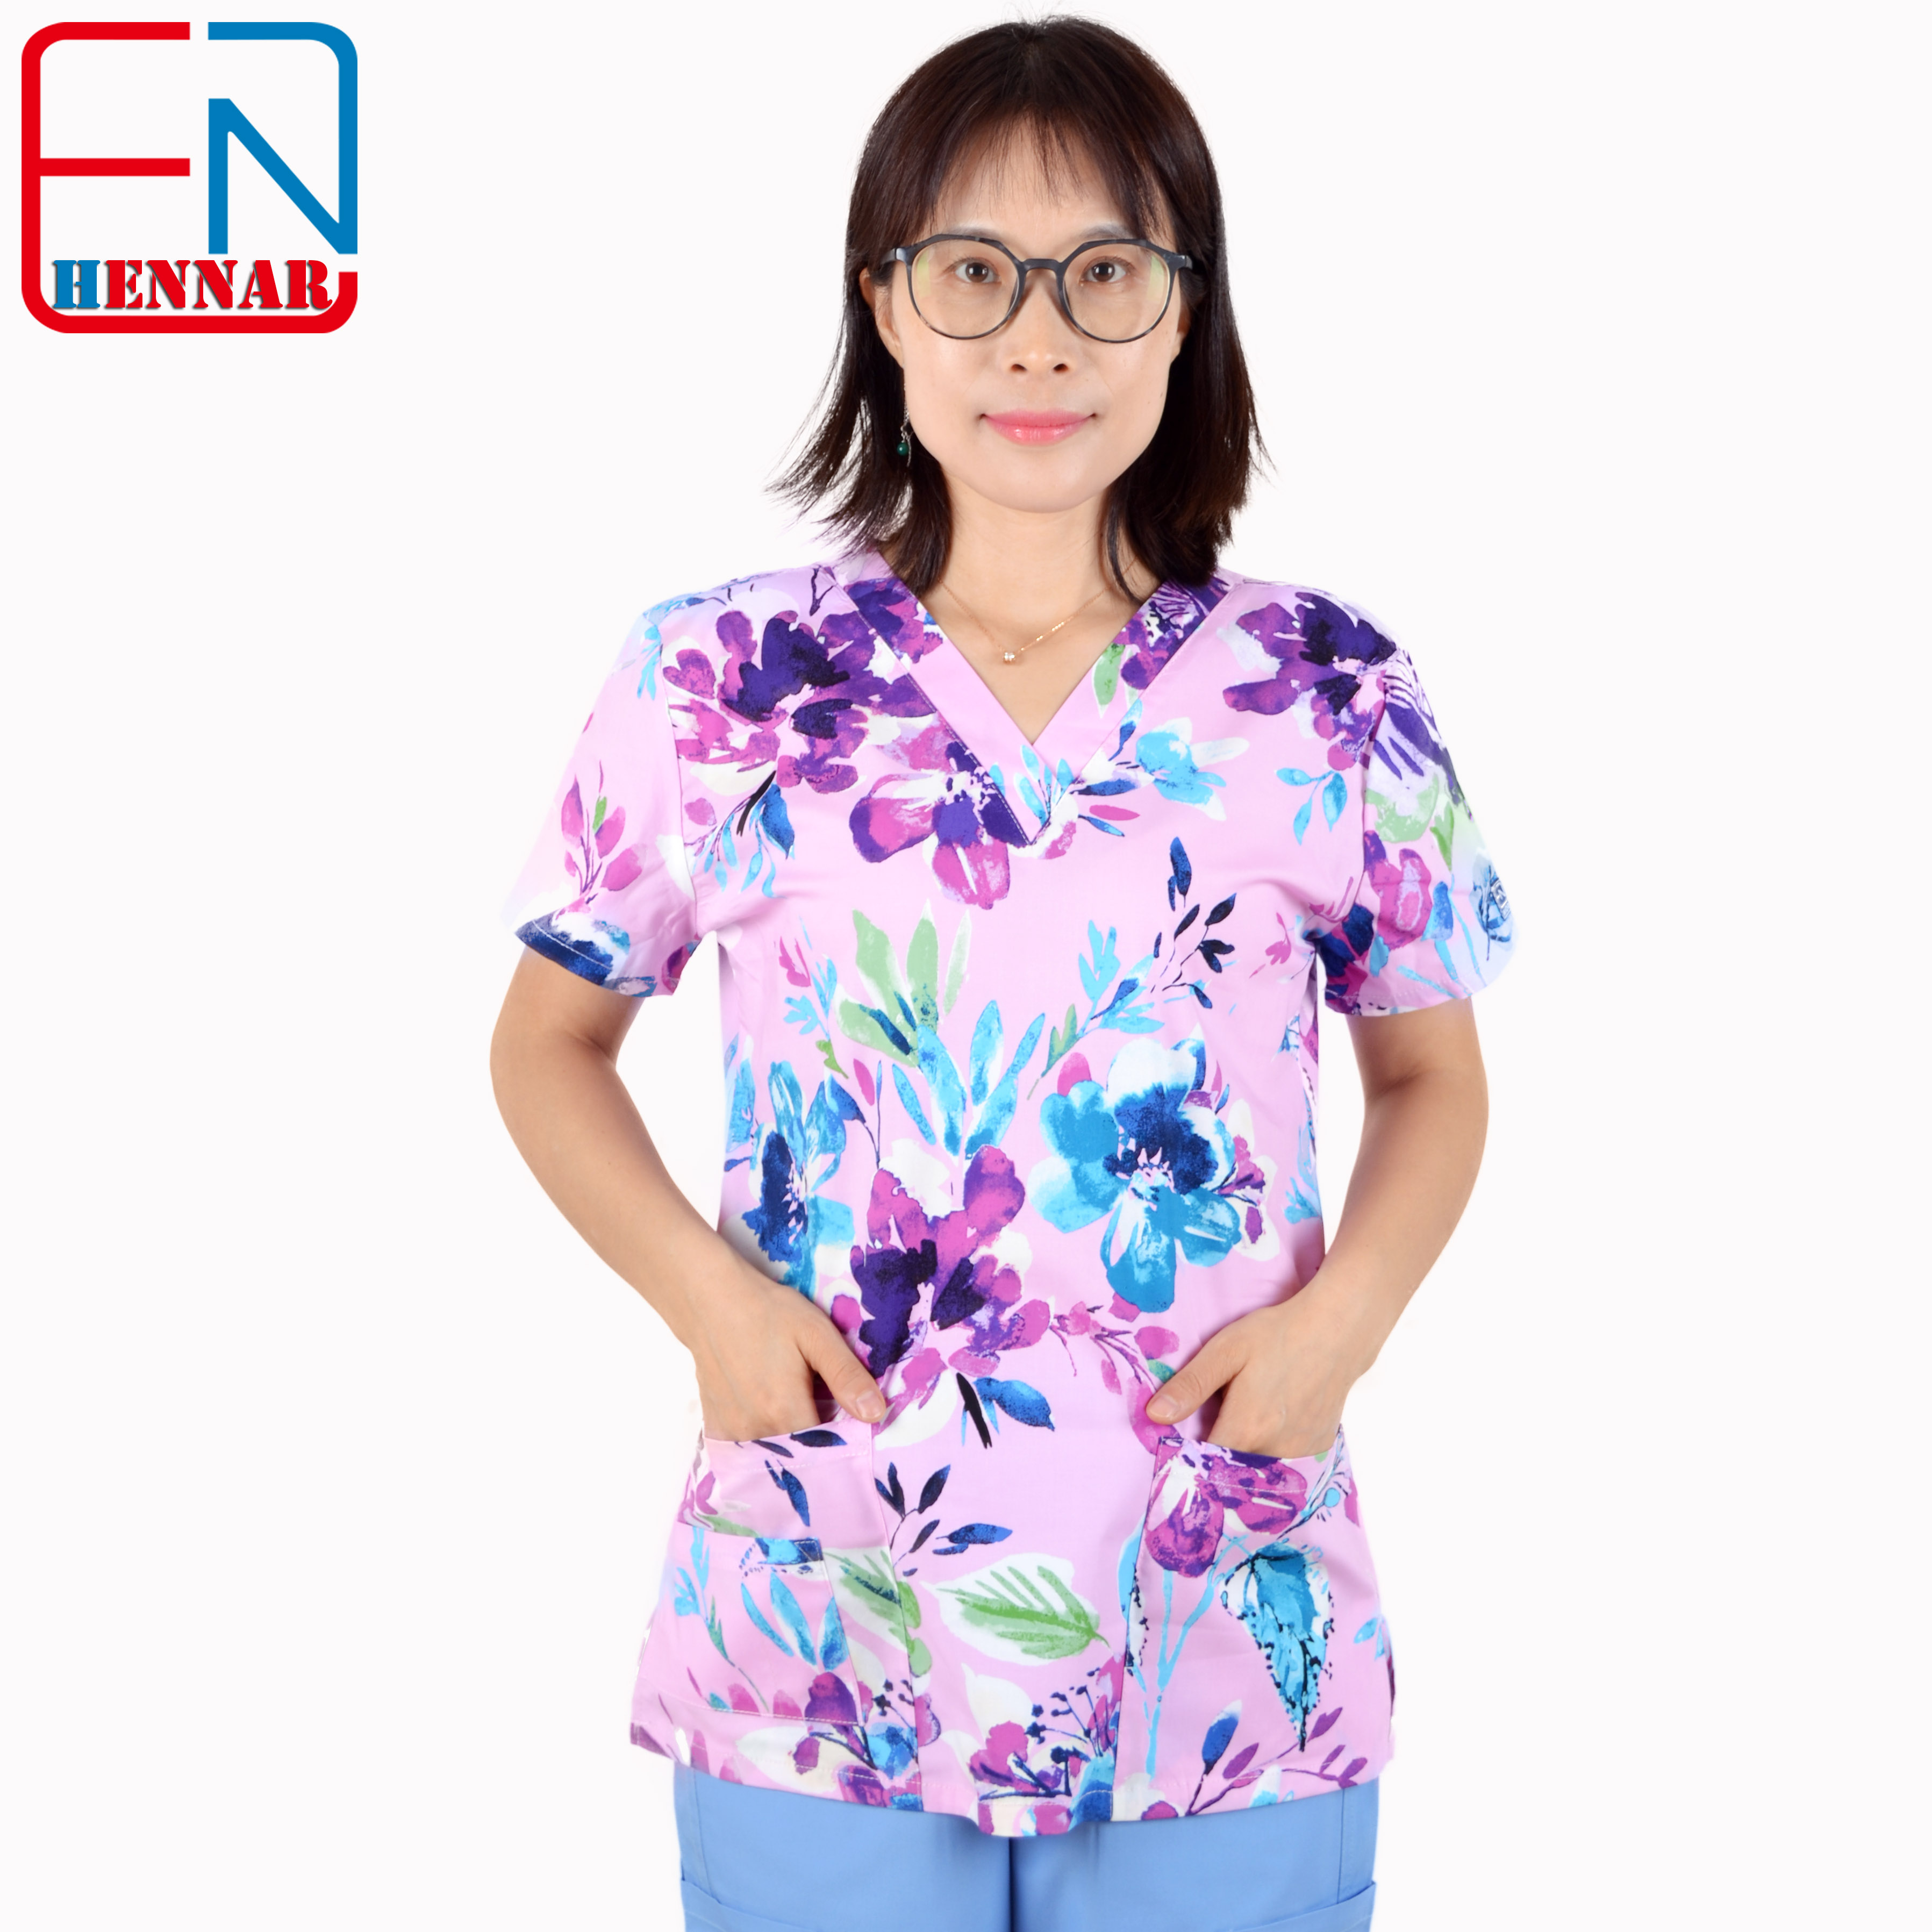 Hennar scrub tops in 100% cotton ,women scrub tops,women medical uniforms